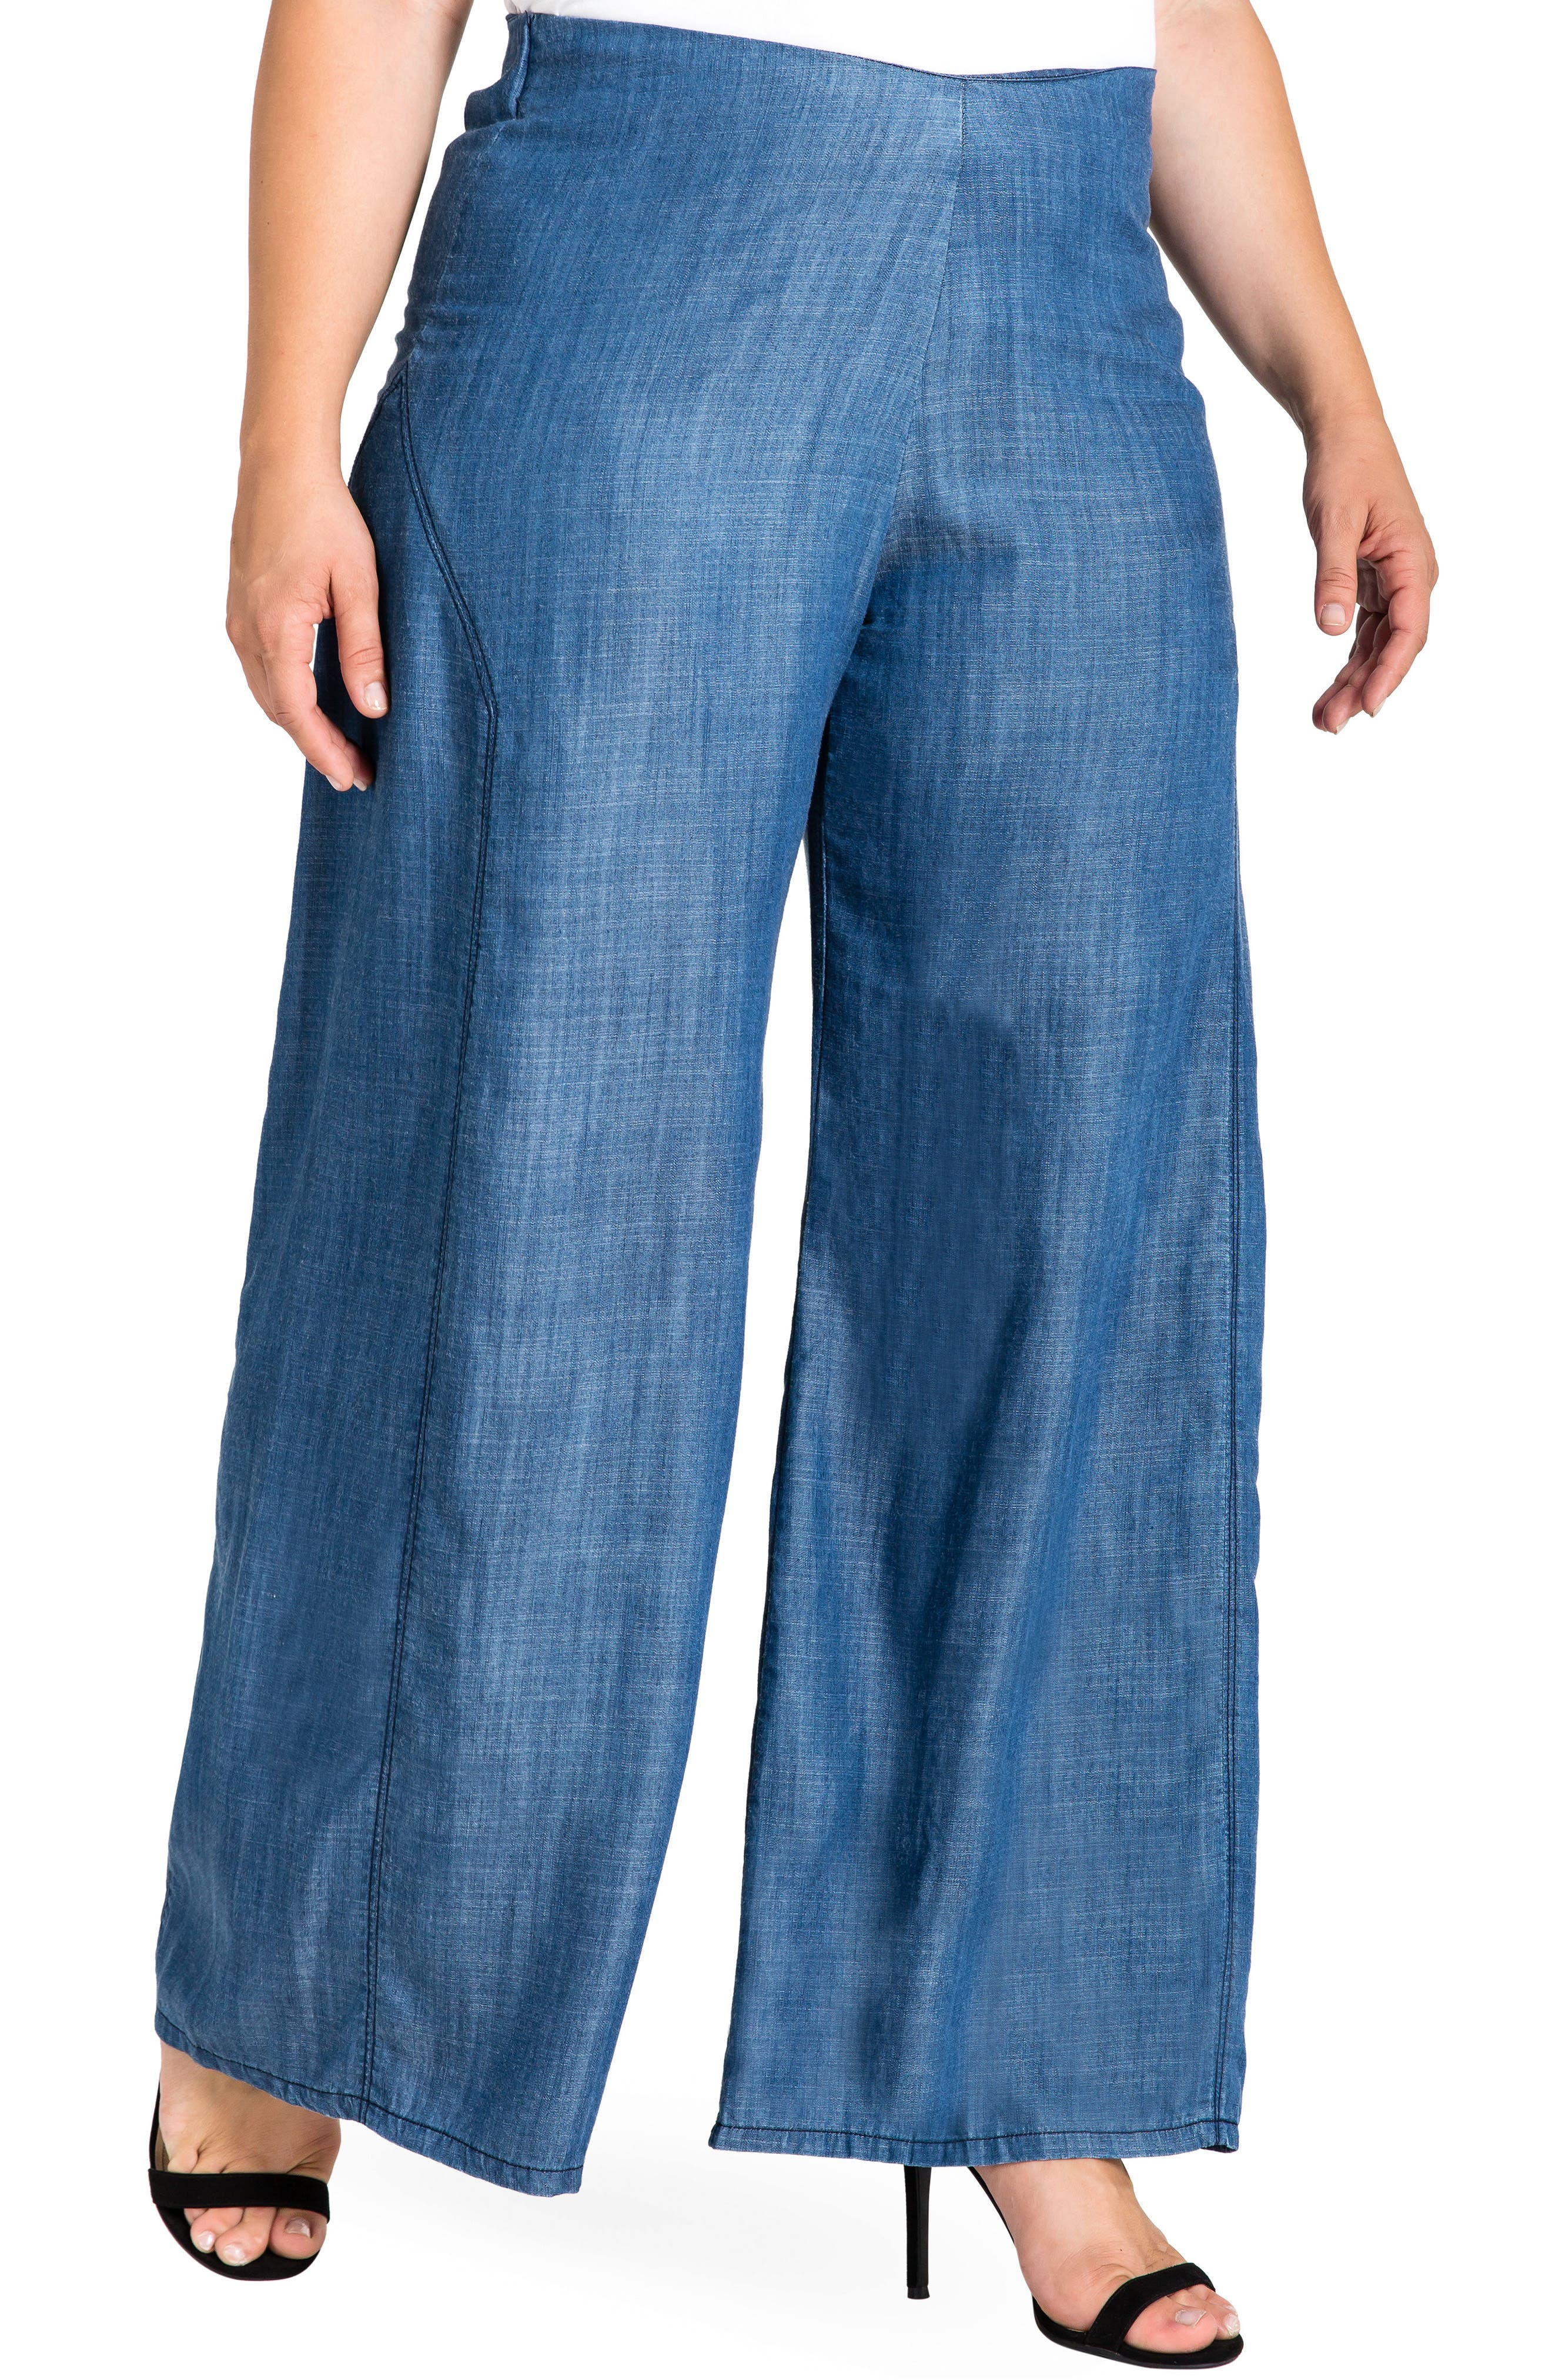 STANDARDS & PRACTICES,                             Perry Tencel<sup>®</sup> Denim Palazzo Pants,                             Main thumbnail 1, color,                             ALMOST RINSED